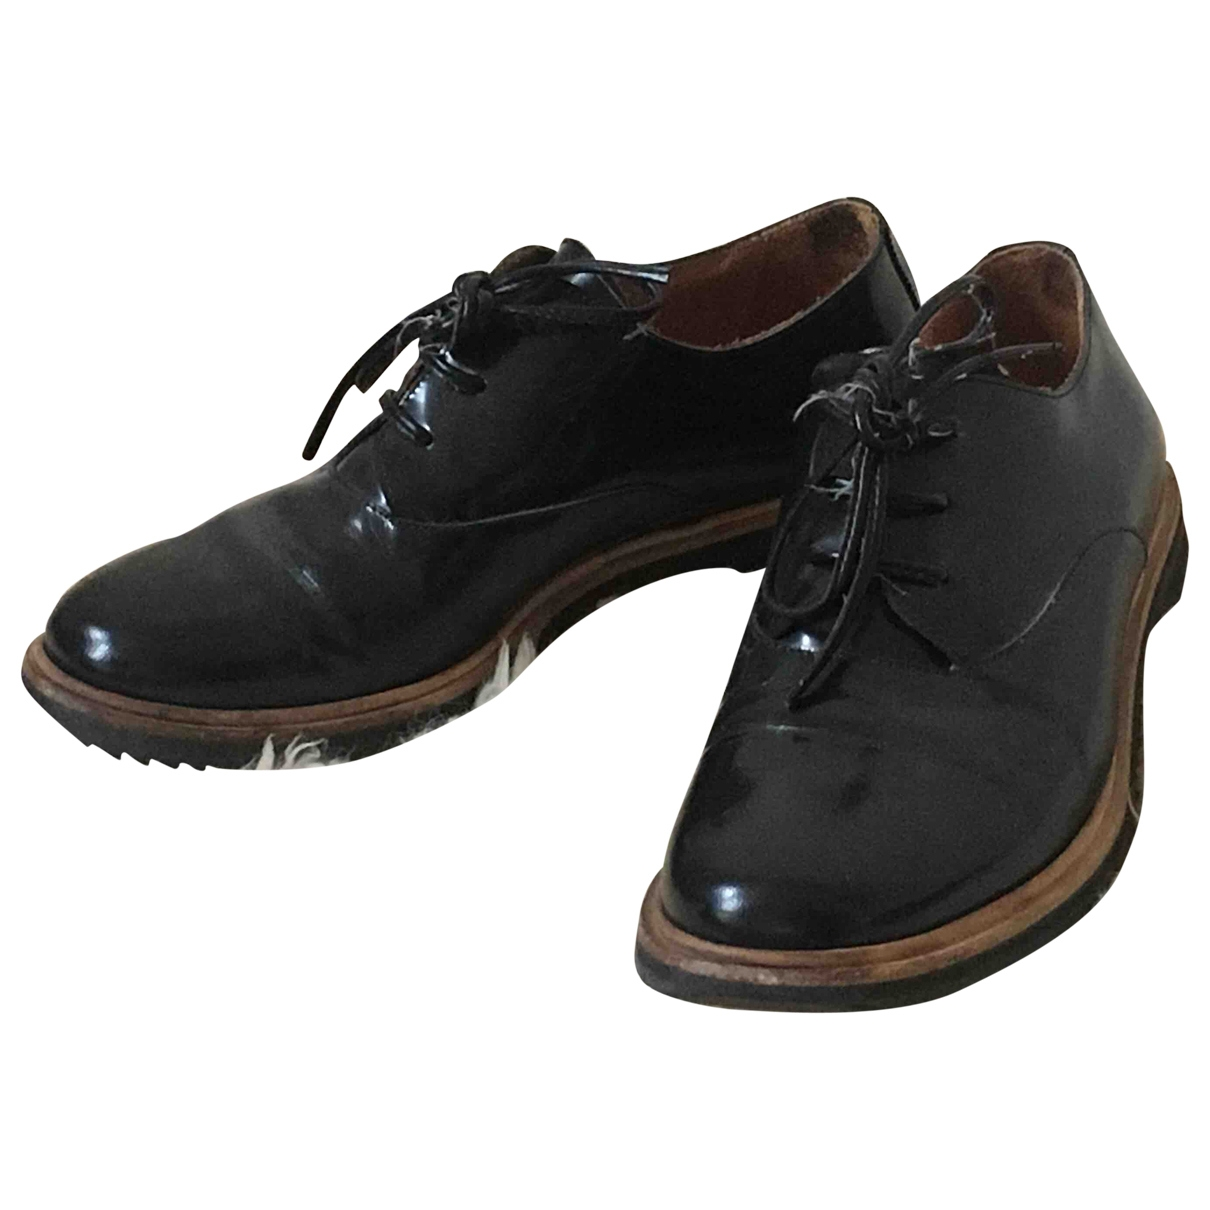 Mm6 \N Black Patent leather Lace ups for Women 36 EU